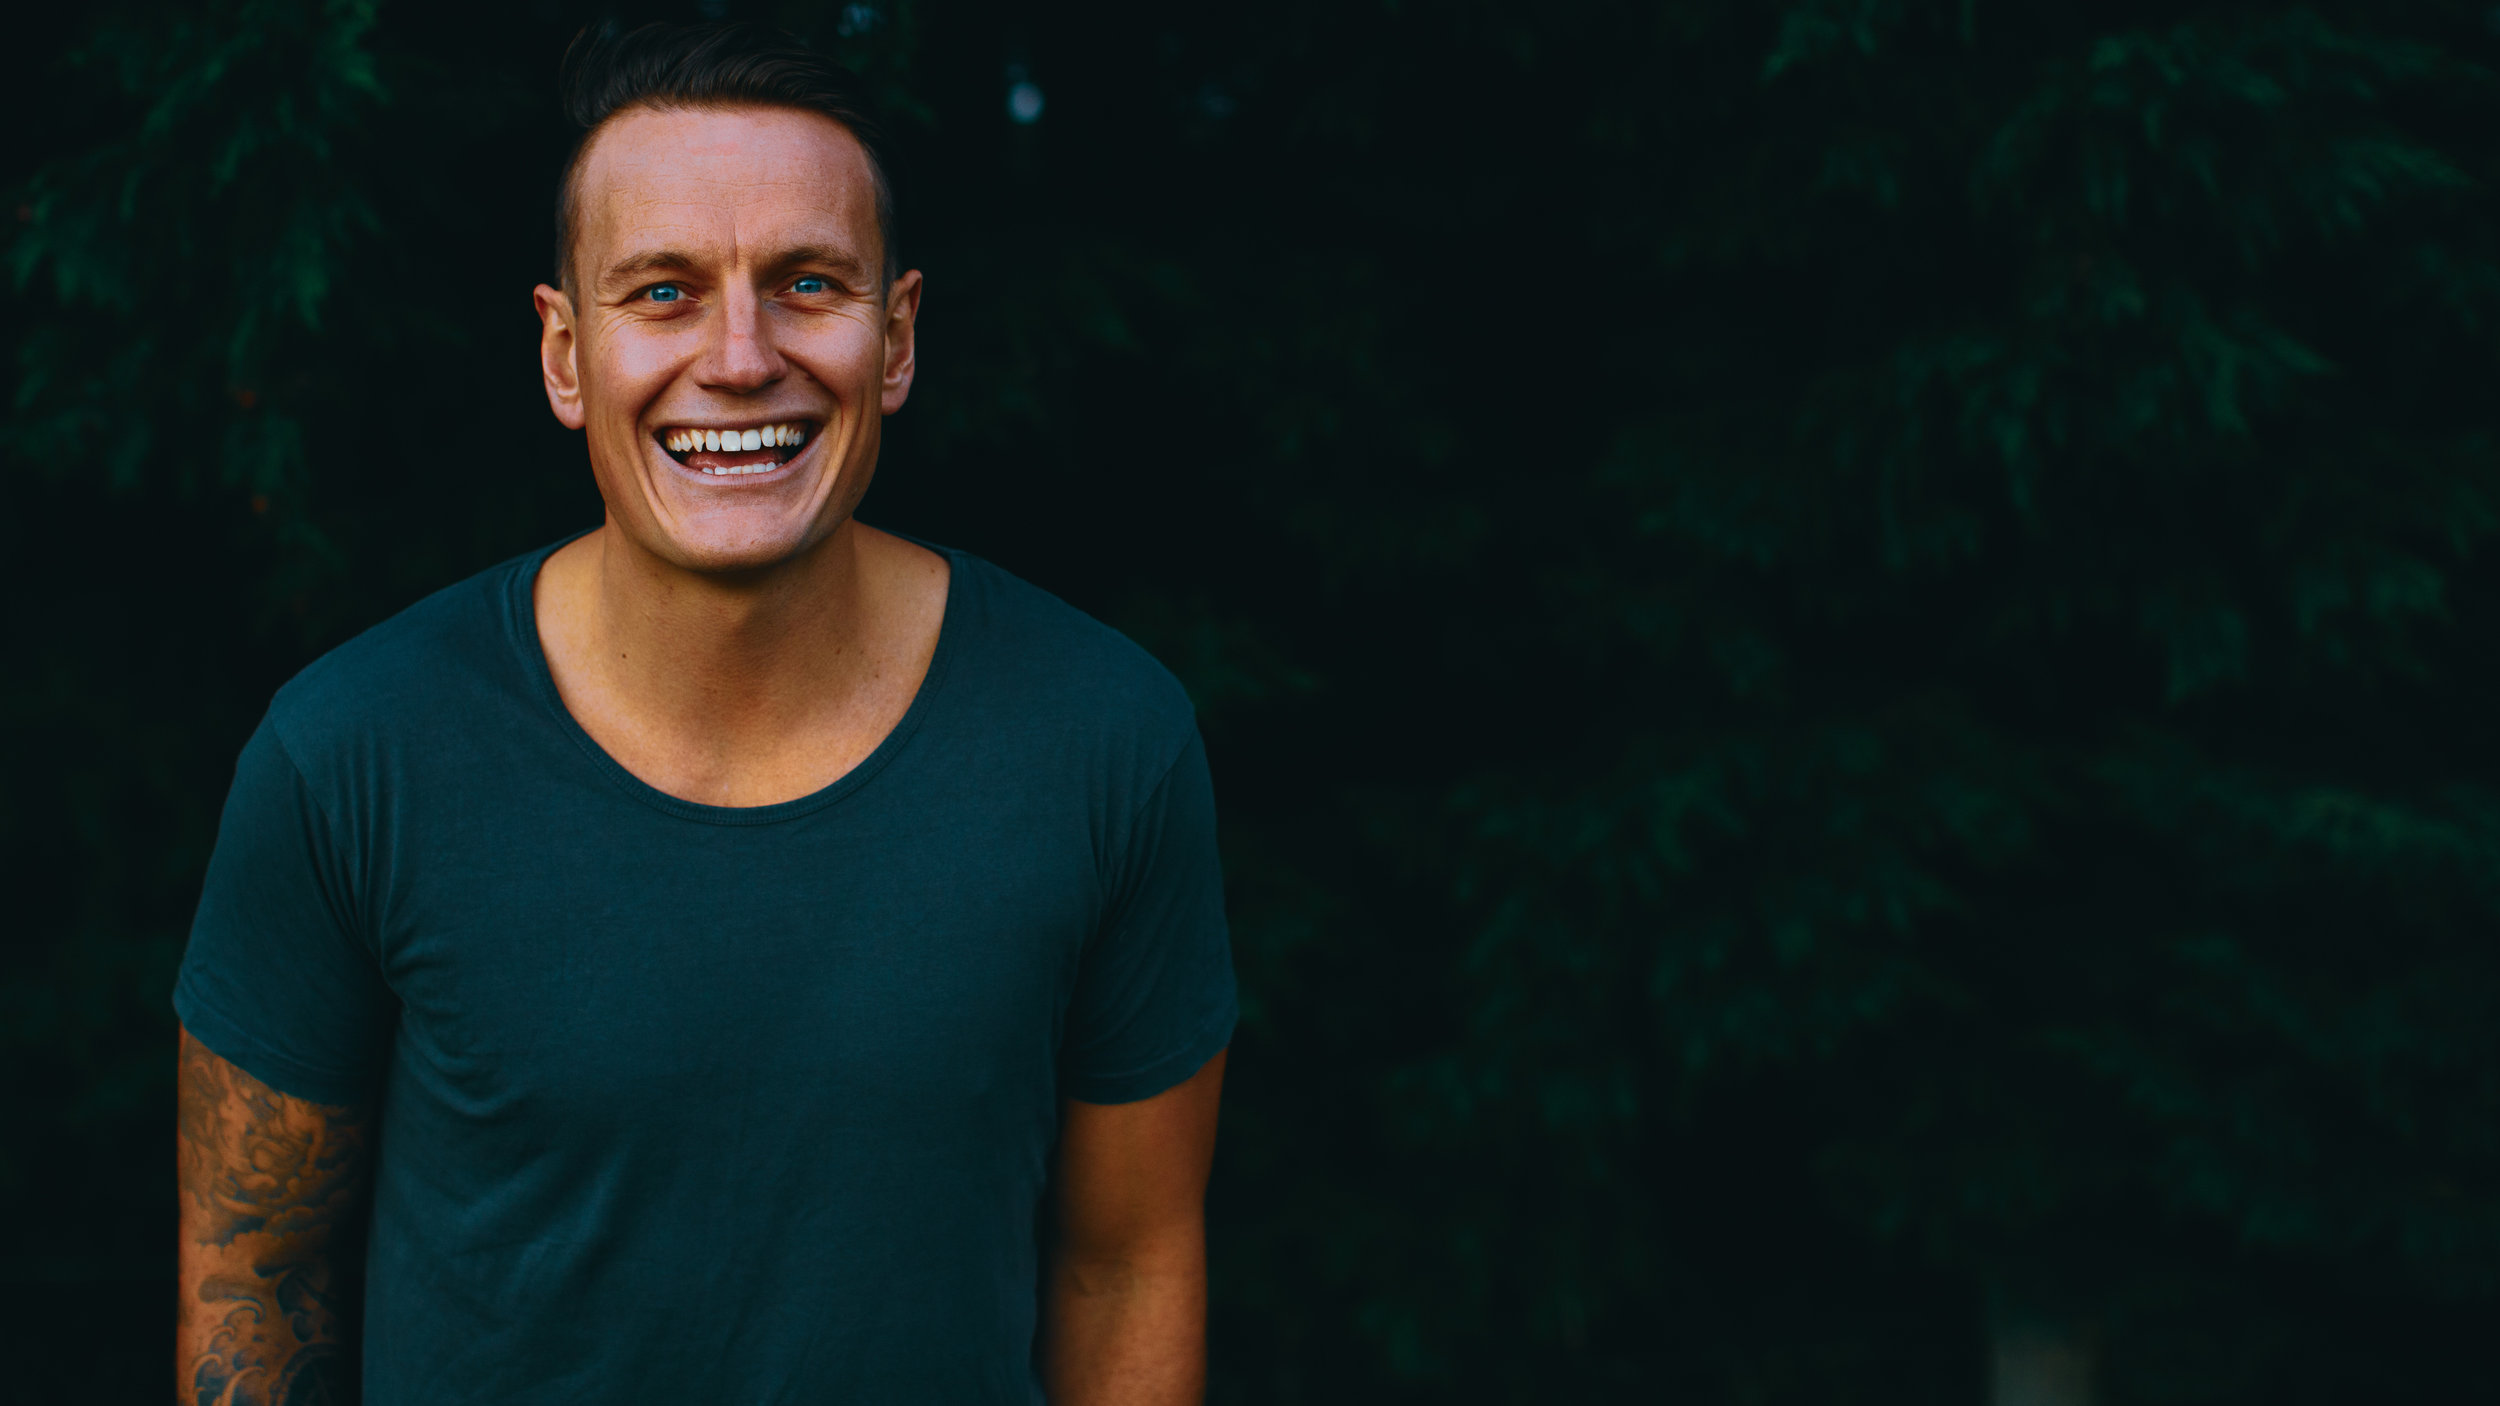 Matty Lovell - is a Blogger, Speaker and Entrepreneur. He is passionate about adventure, business and wellness.